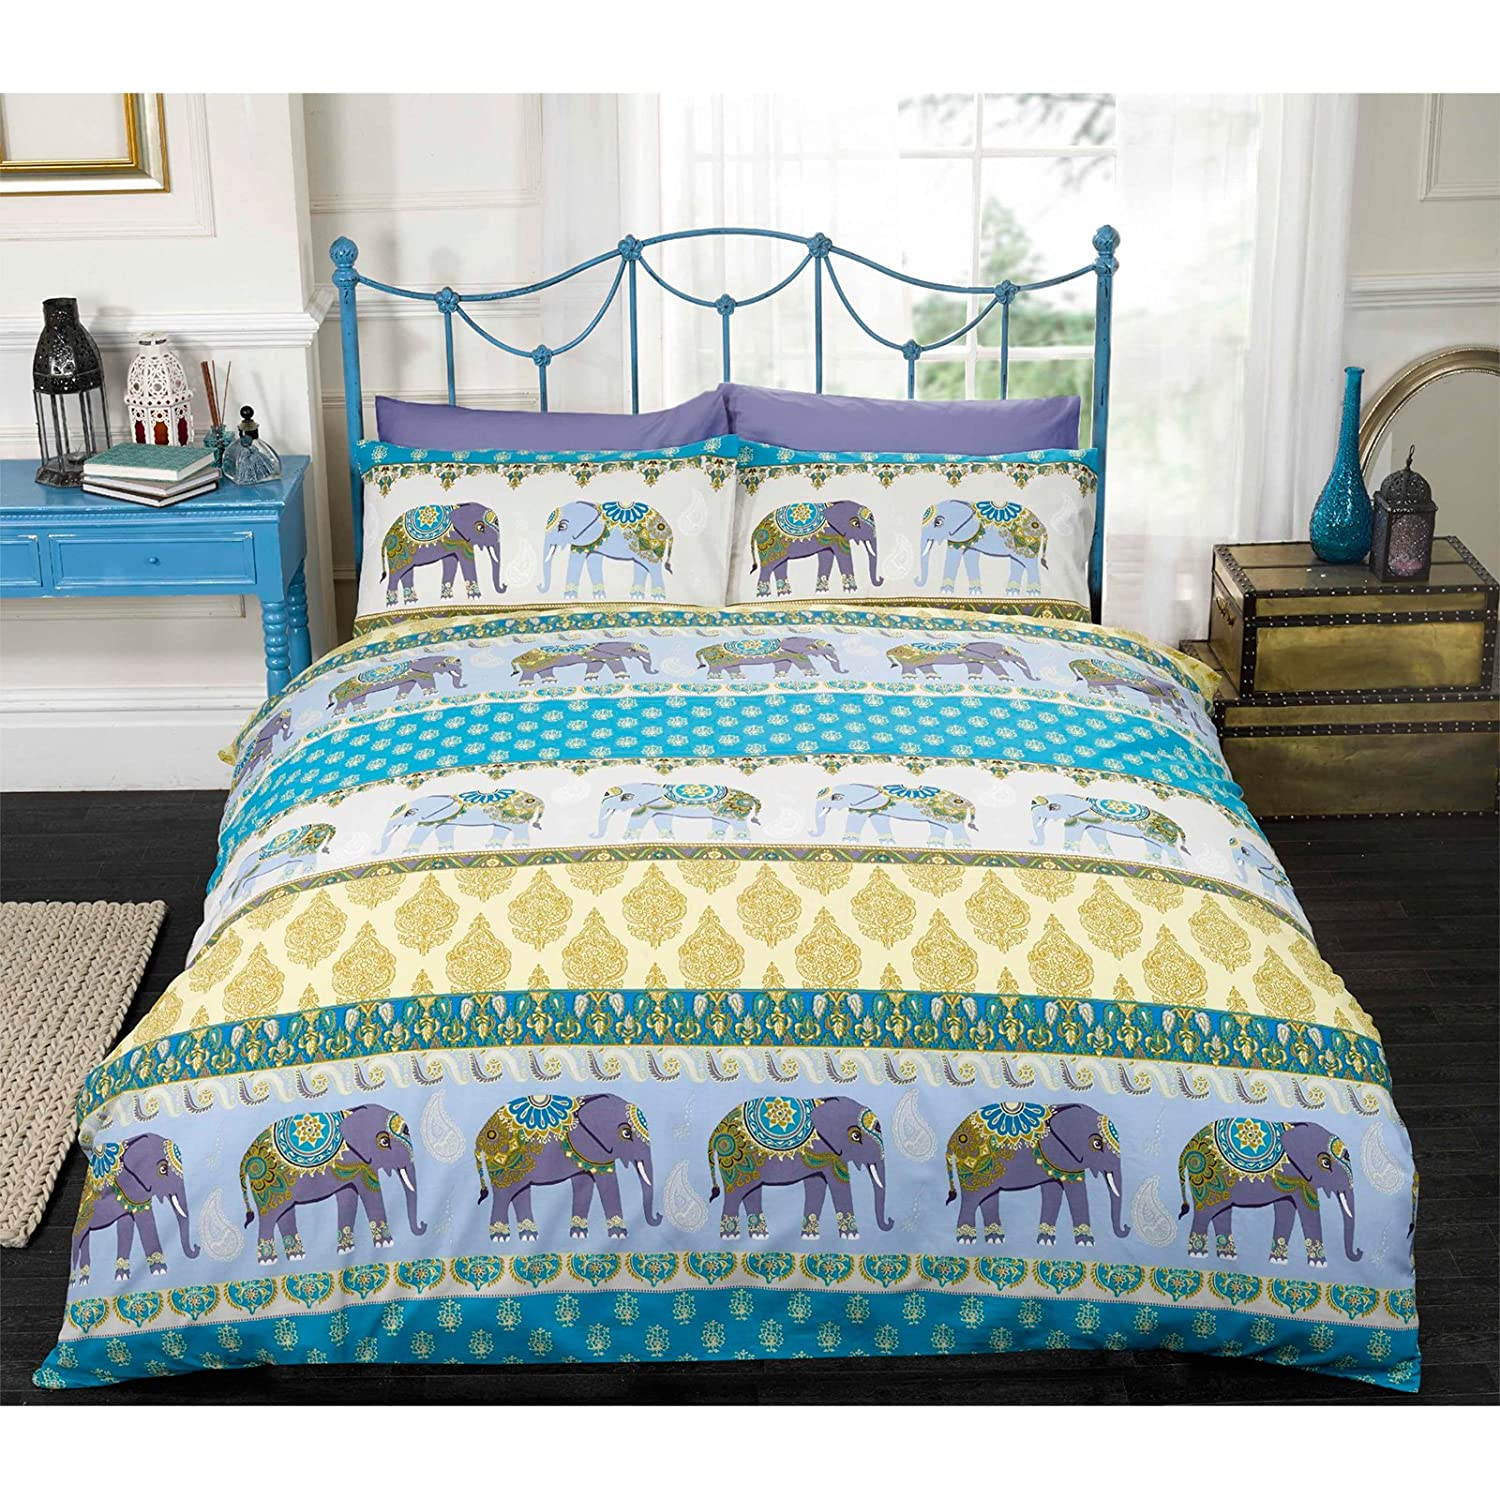 Just Contempo Ethnic Elephant Duvet Cover Set King Blue Amazon